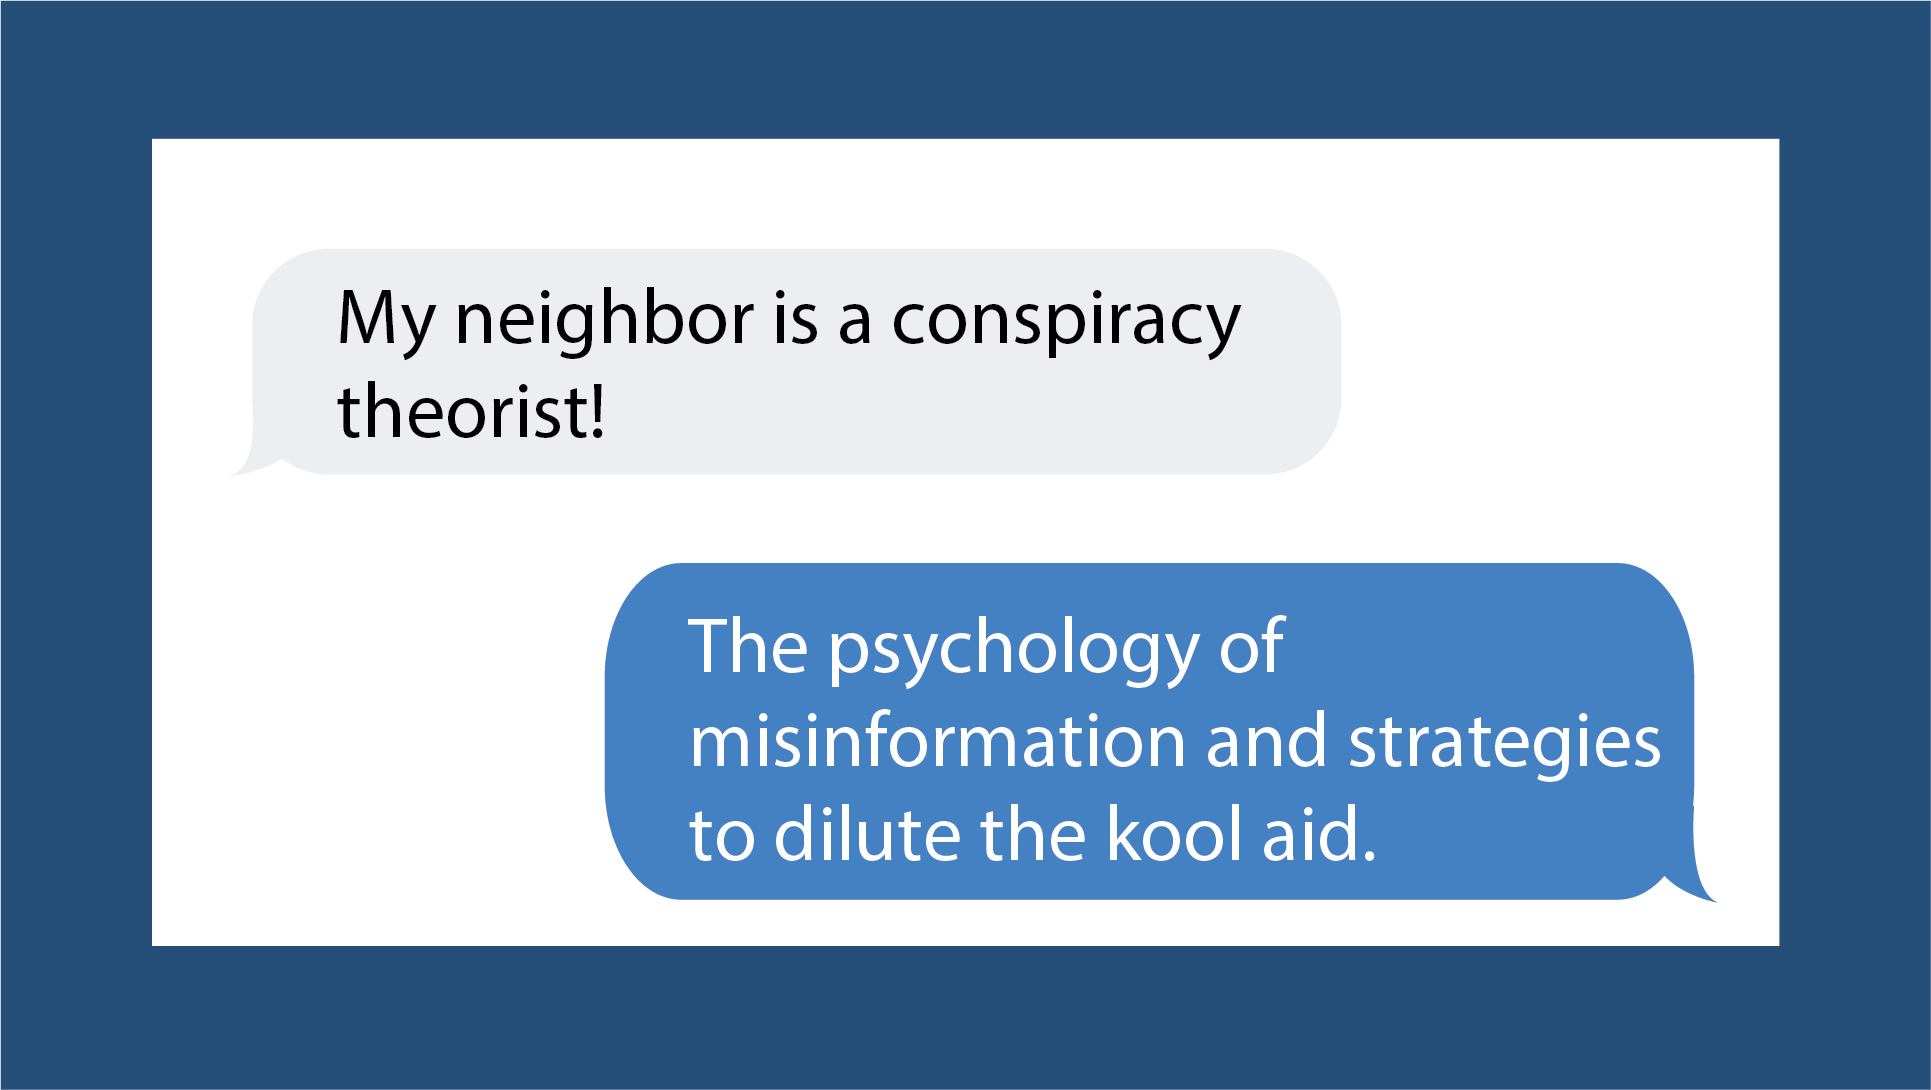 My Neighbor is a Conspiracy Theorist! The Psychology of Misinformation and Strategies to Dilute the Kool Aid